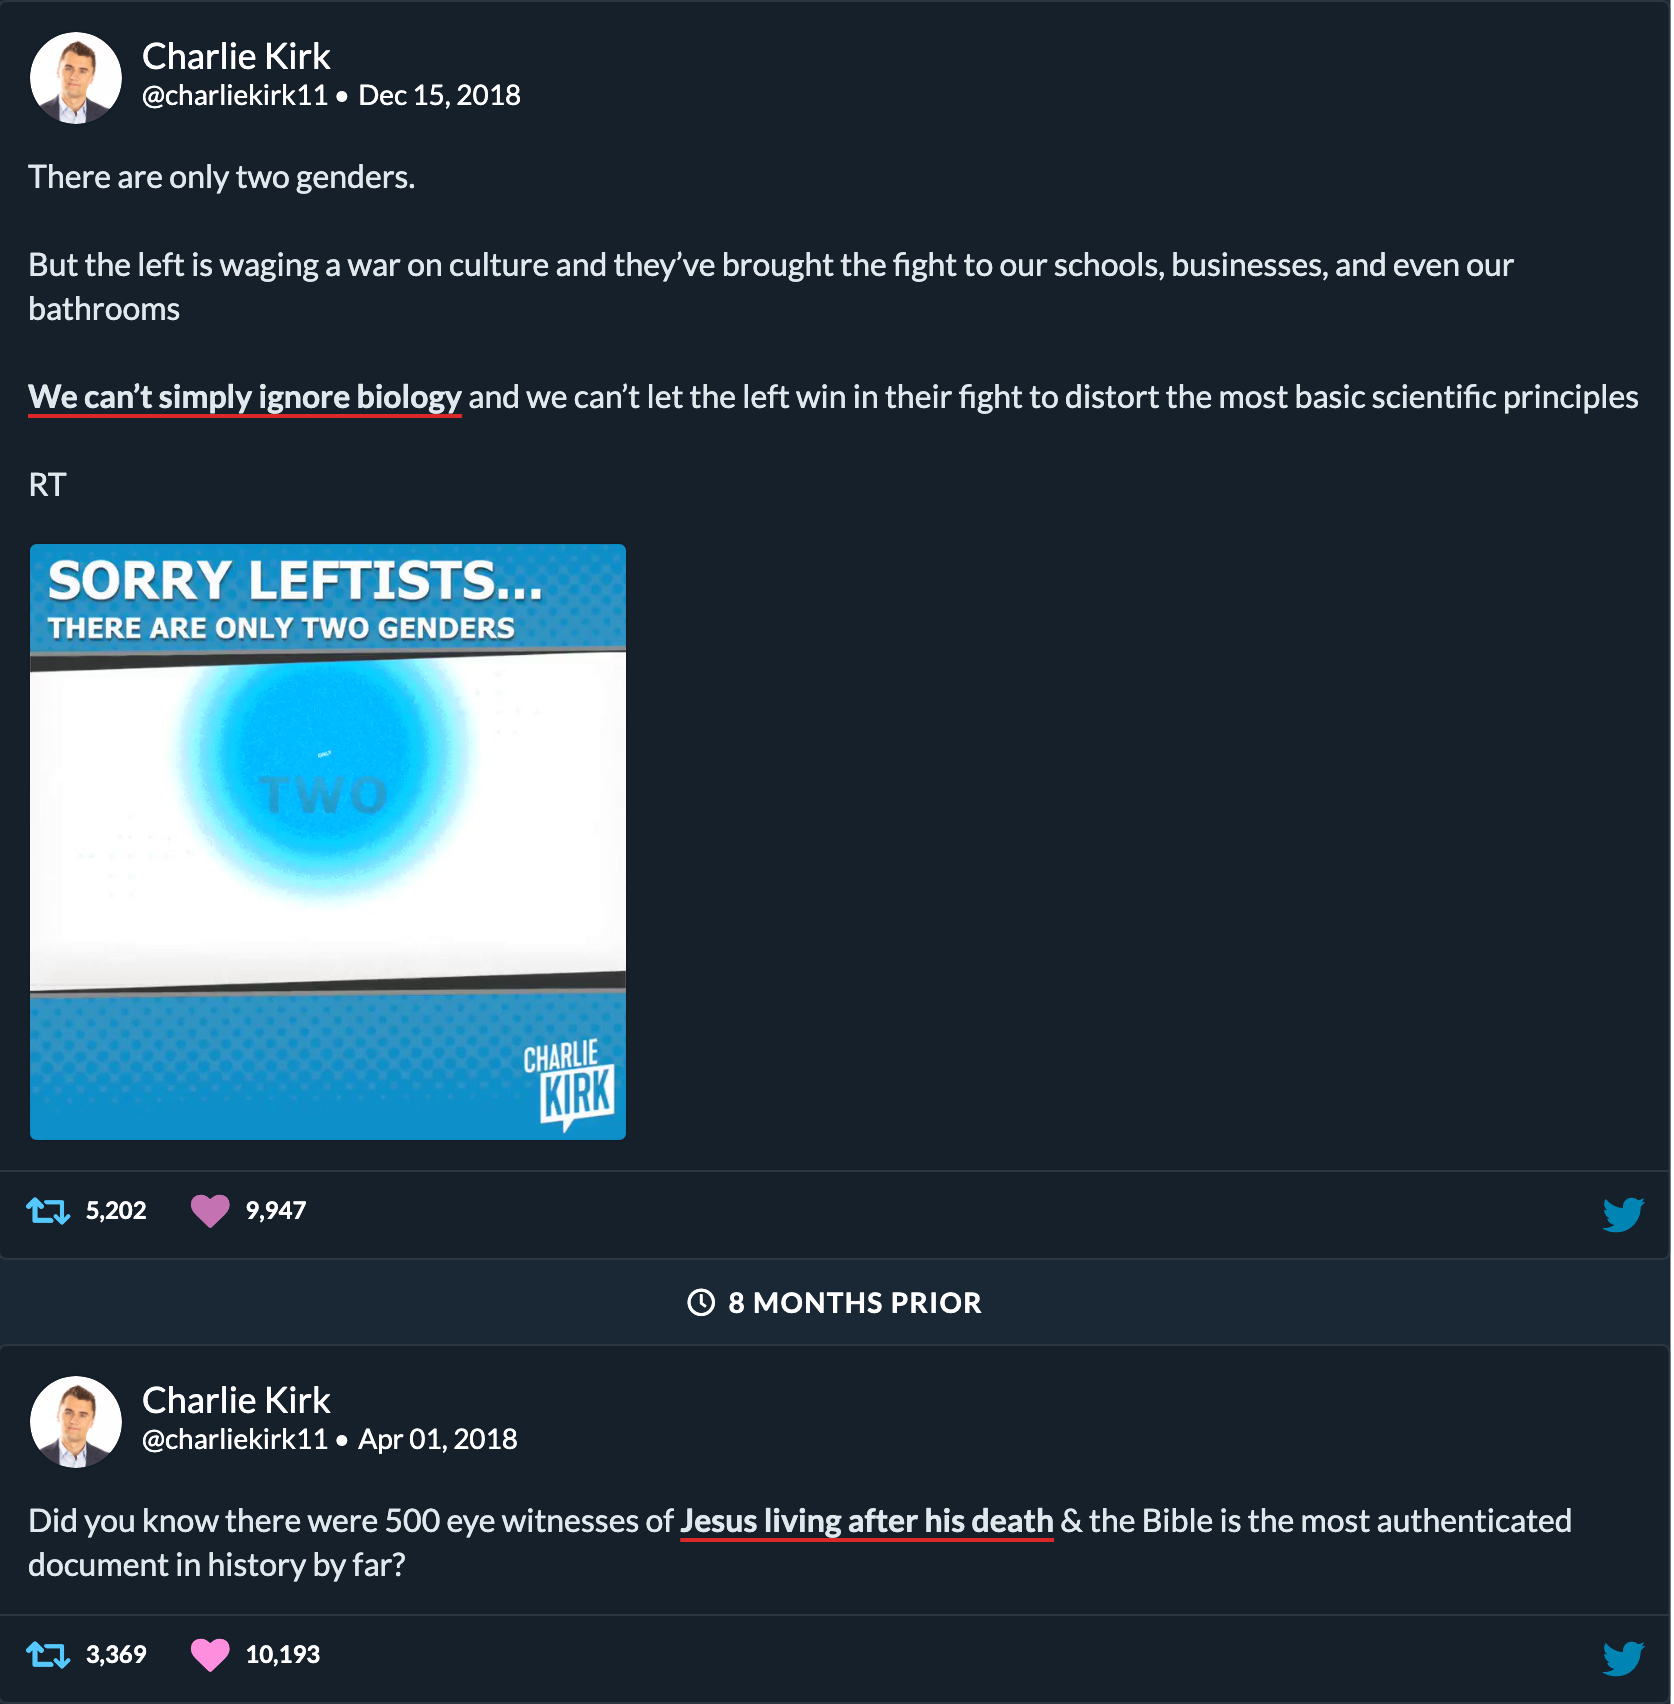 Doublethink by Charlie Kirk